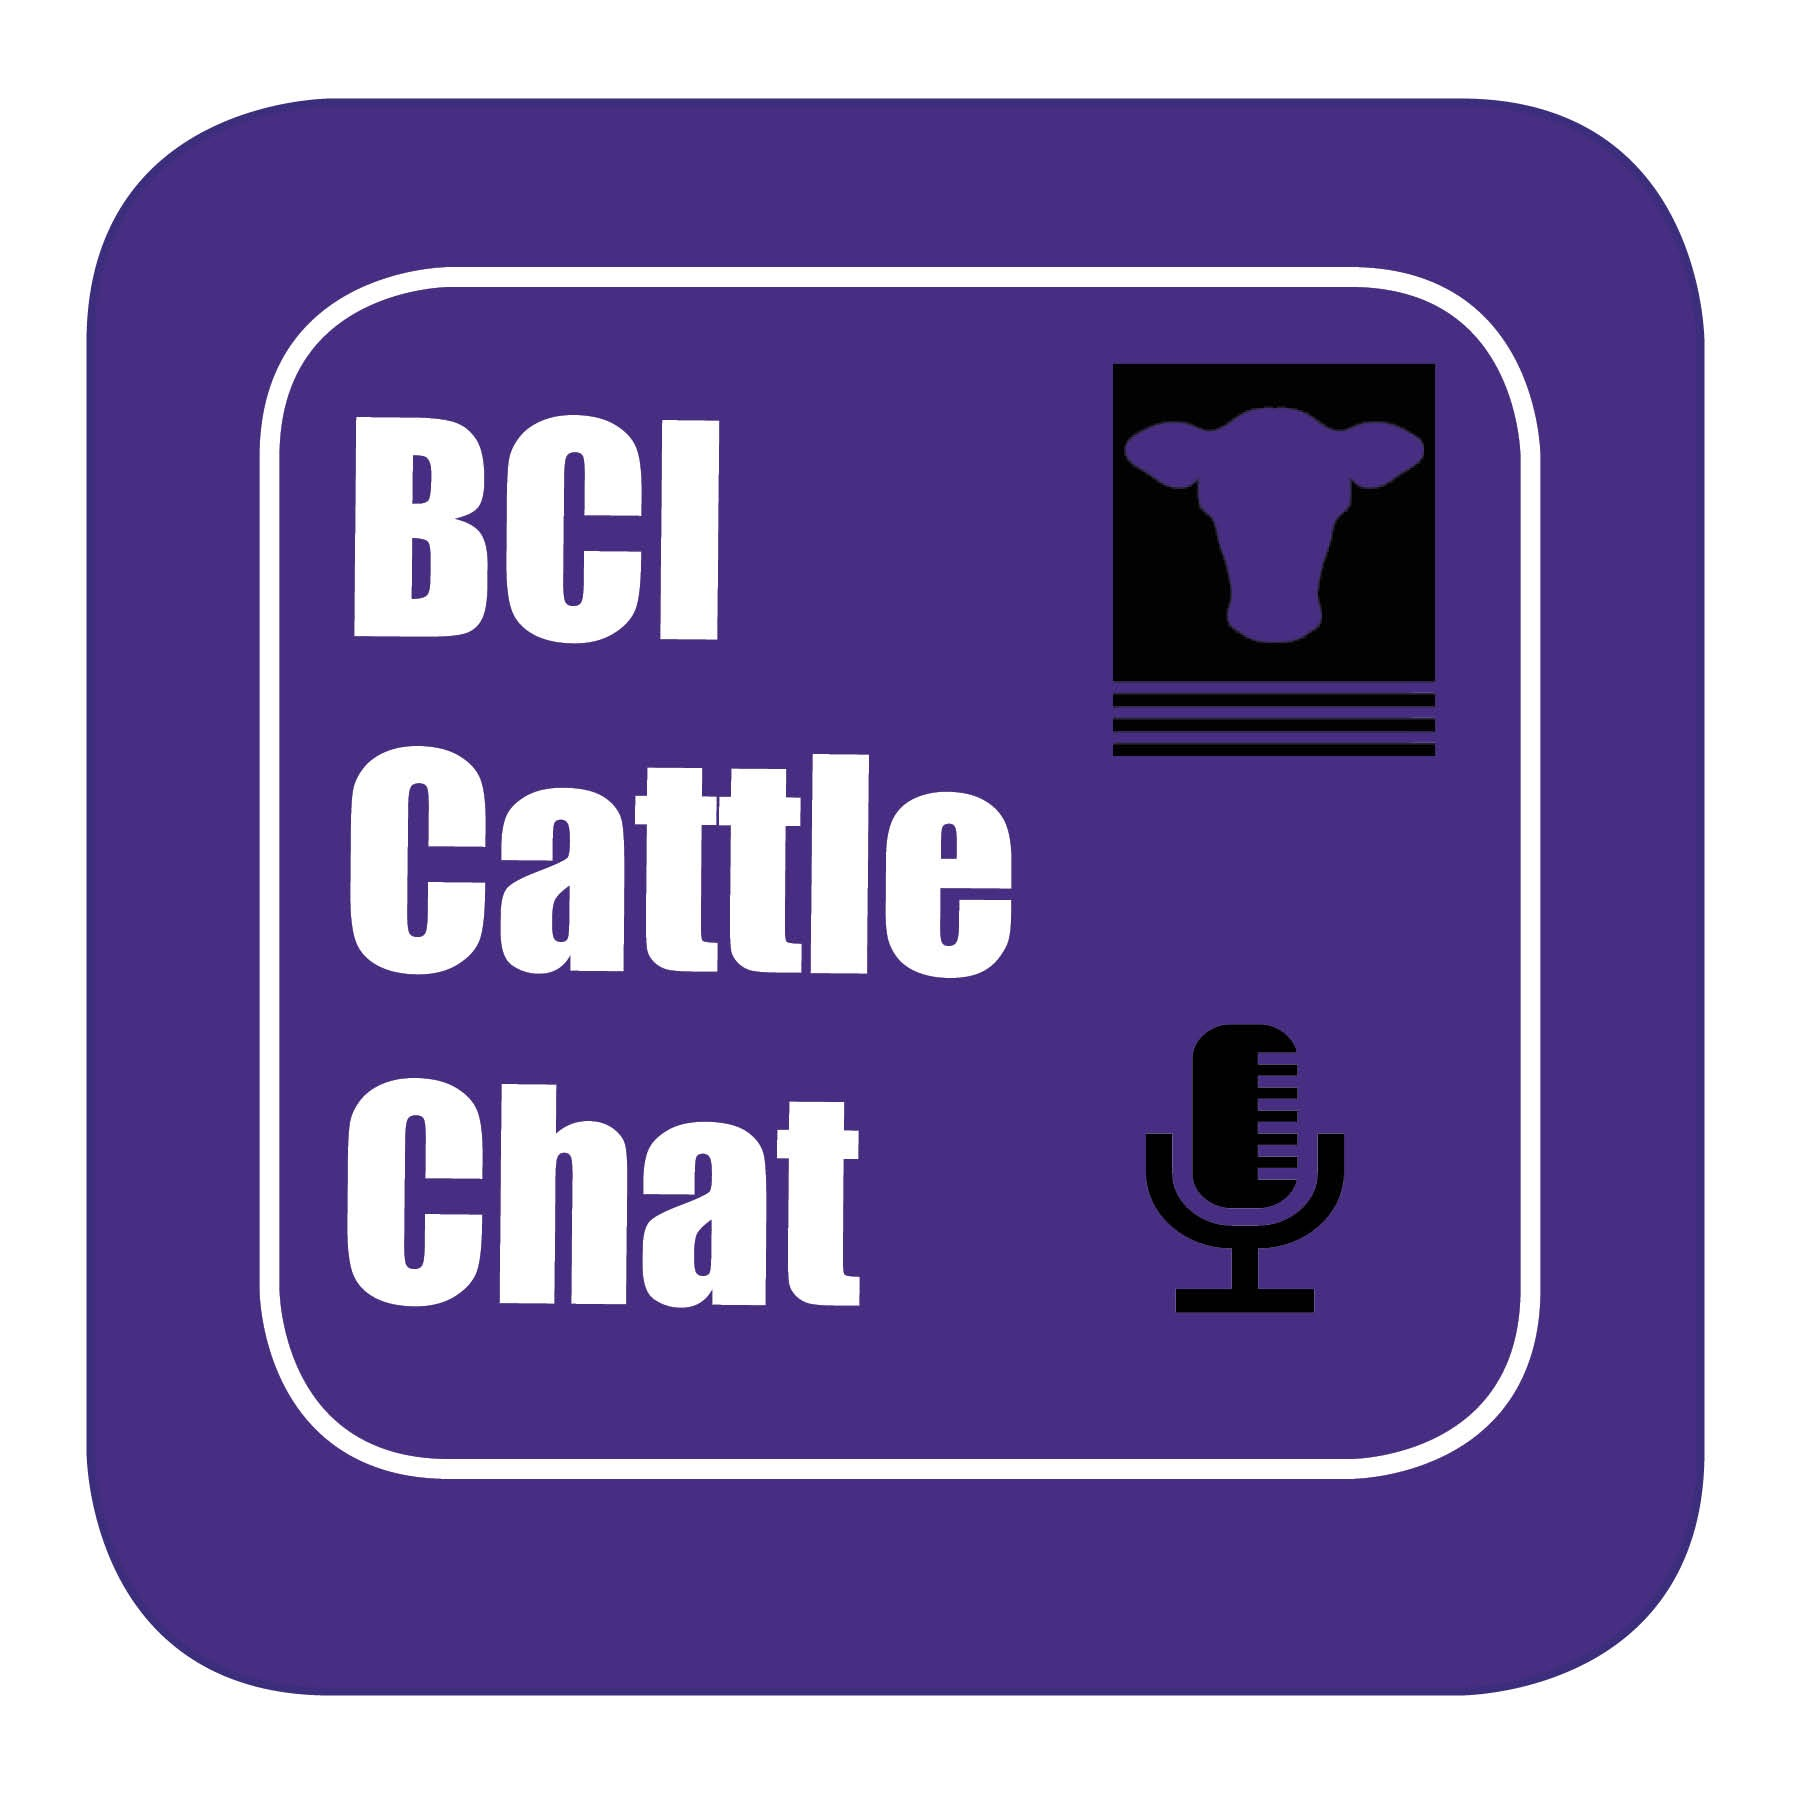 BCI Cattle Chat - Episode 36